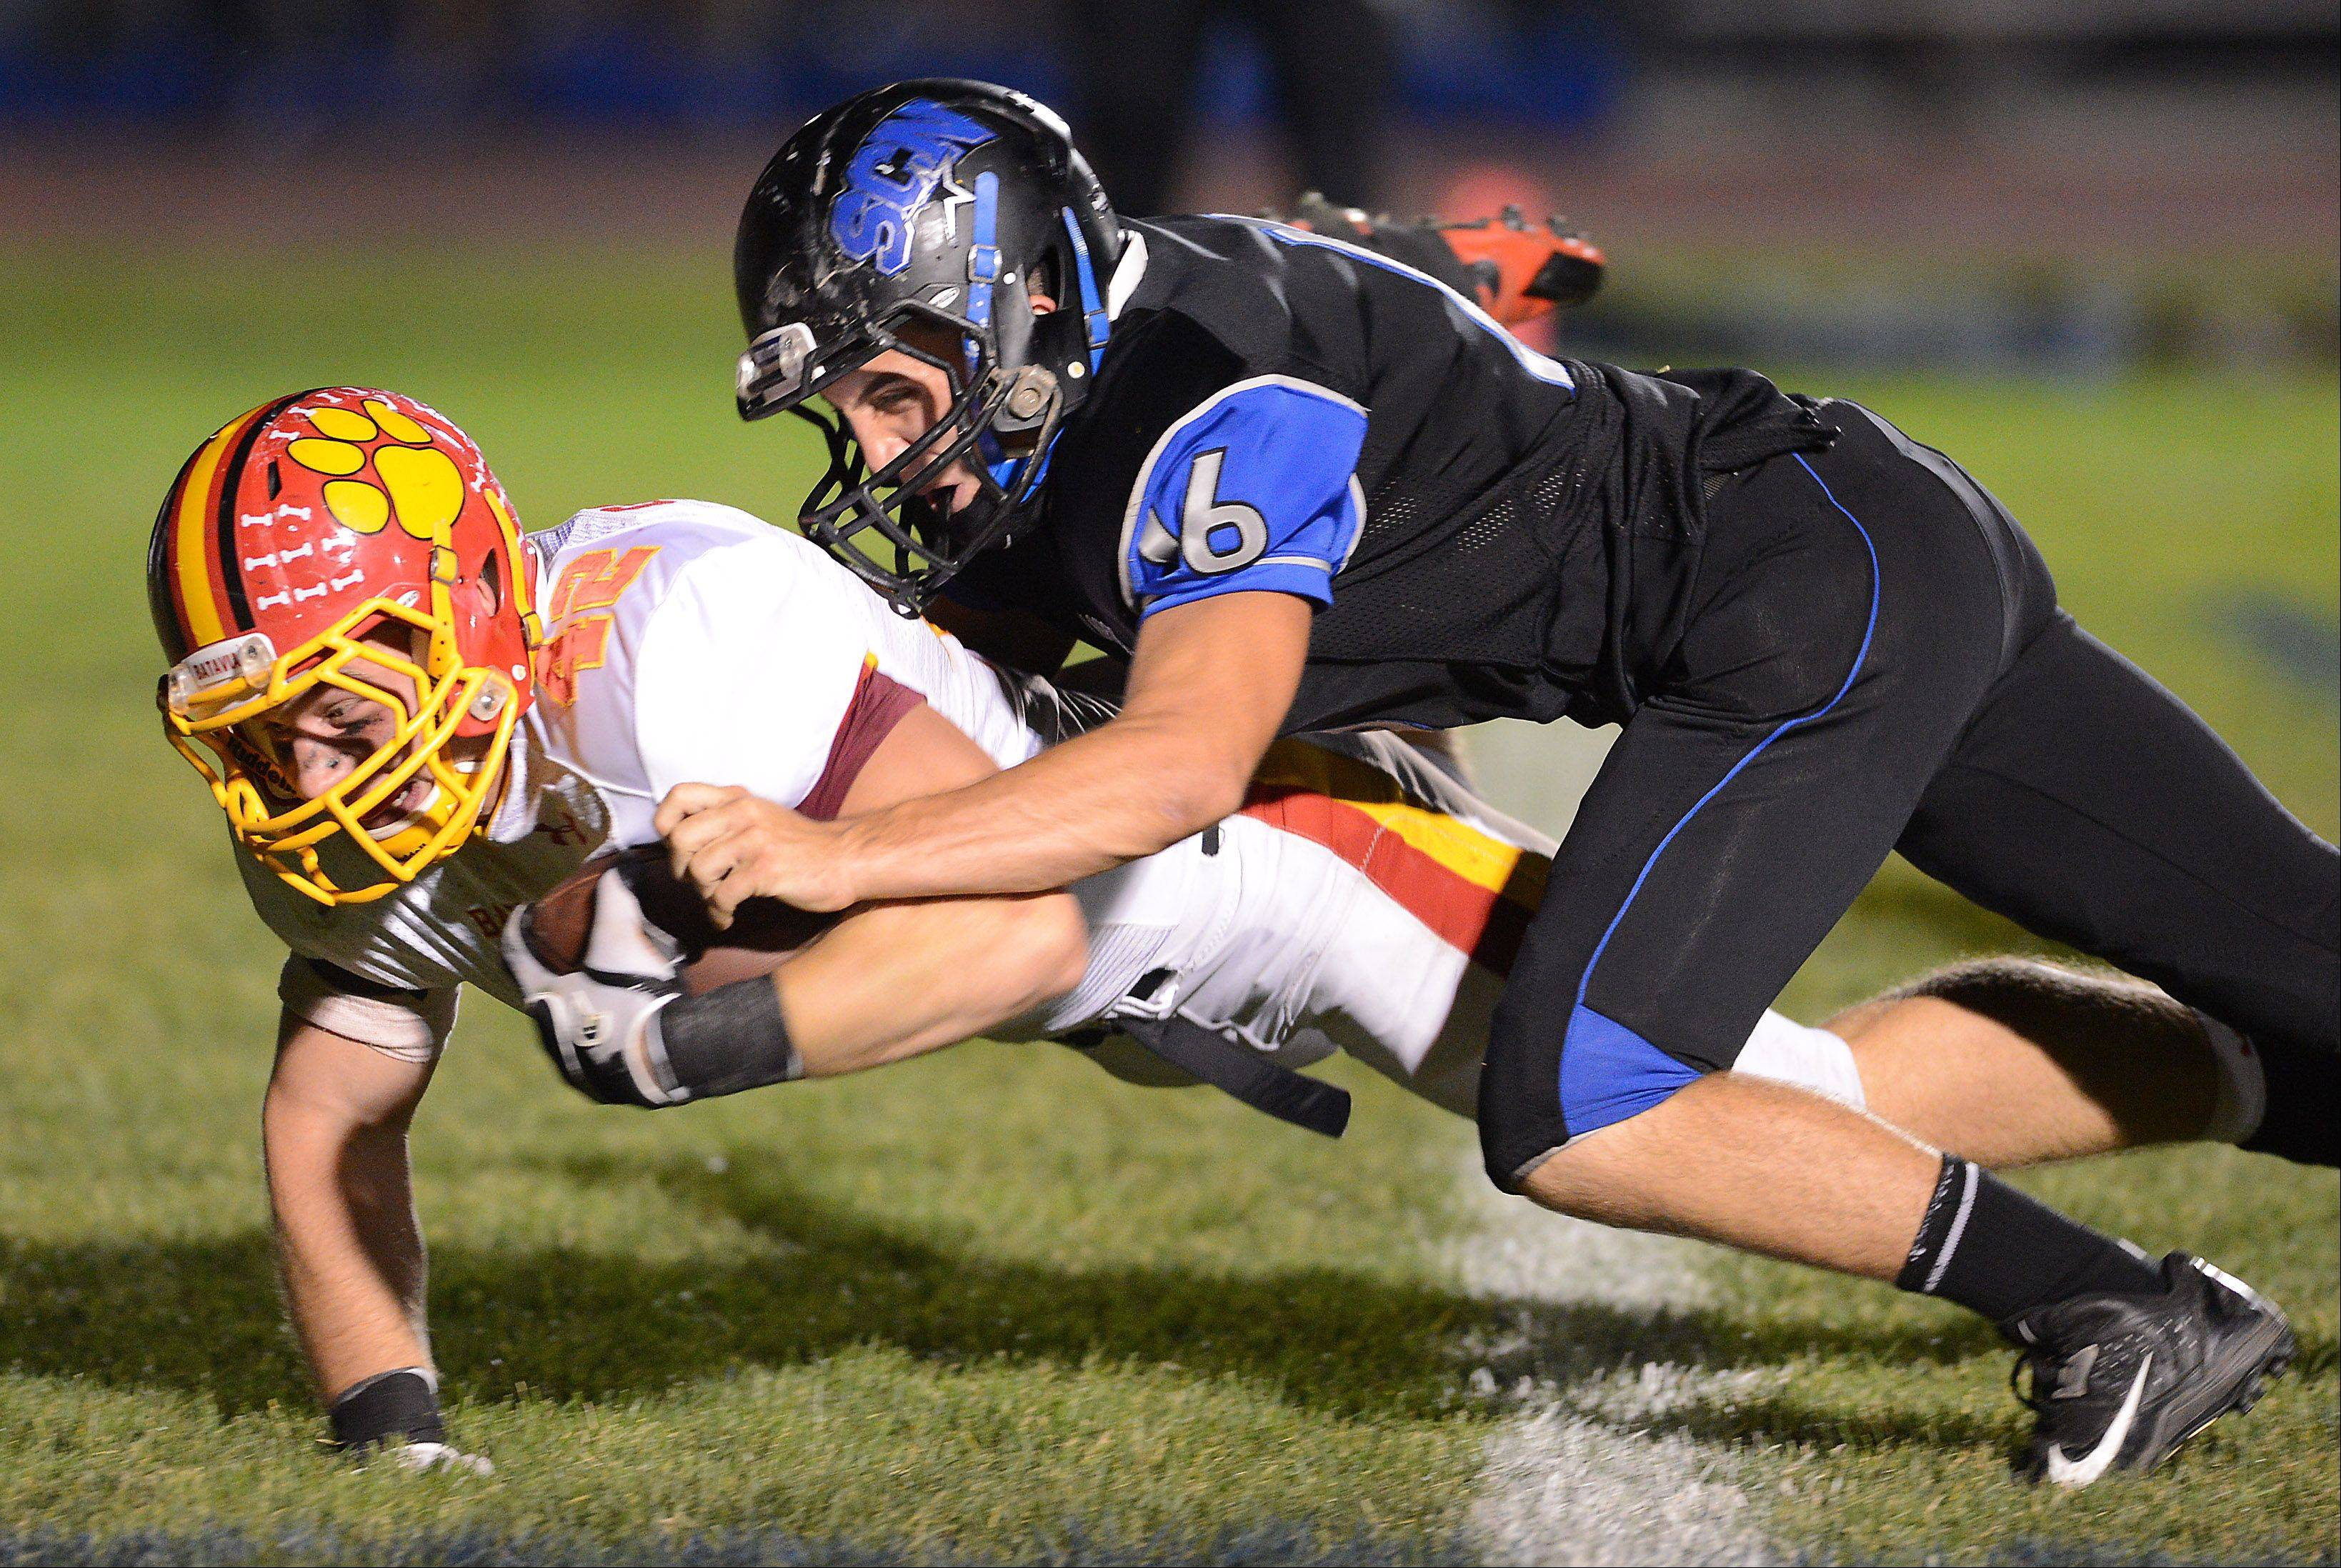 Batavia�s Kevin Green (42) dives across the goalline under pressure from St Charles North�s Tyler Bell for a touchdown to put the Bulldogs up 19-0 against St. Charles North Friday�s game in St. Charles.